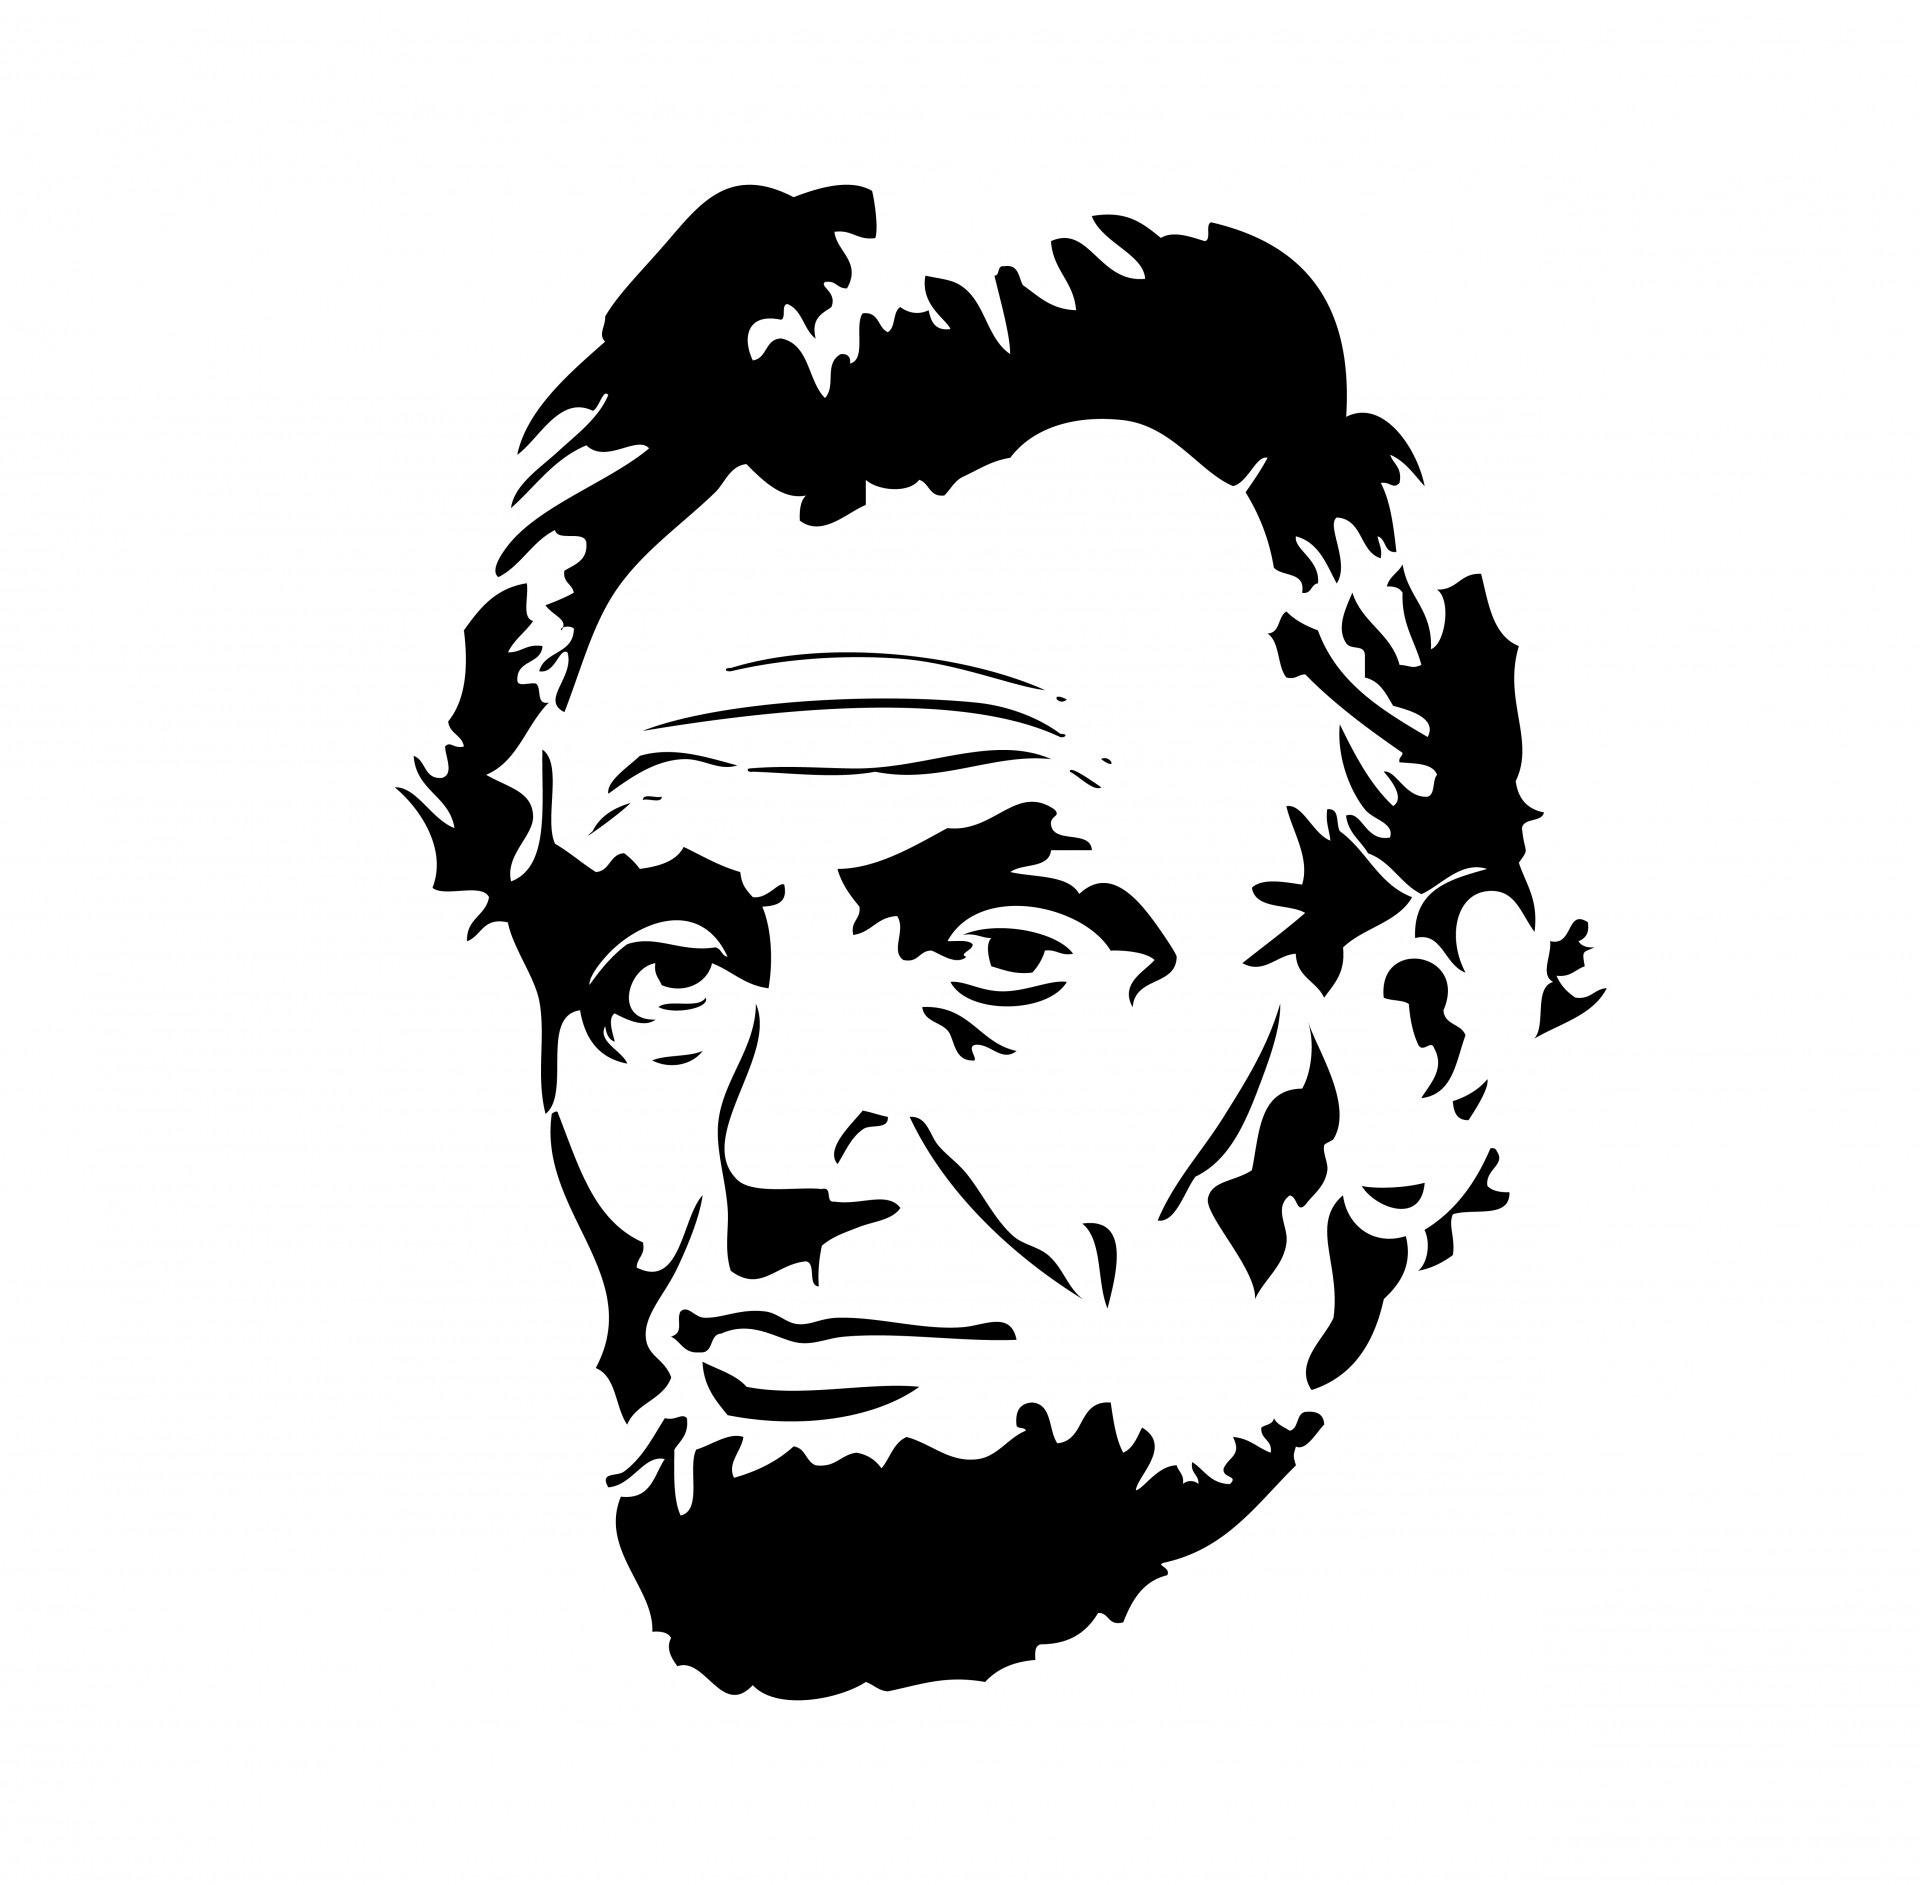 Abraham lincoln clipart easy. Black and white letters